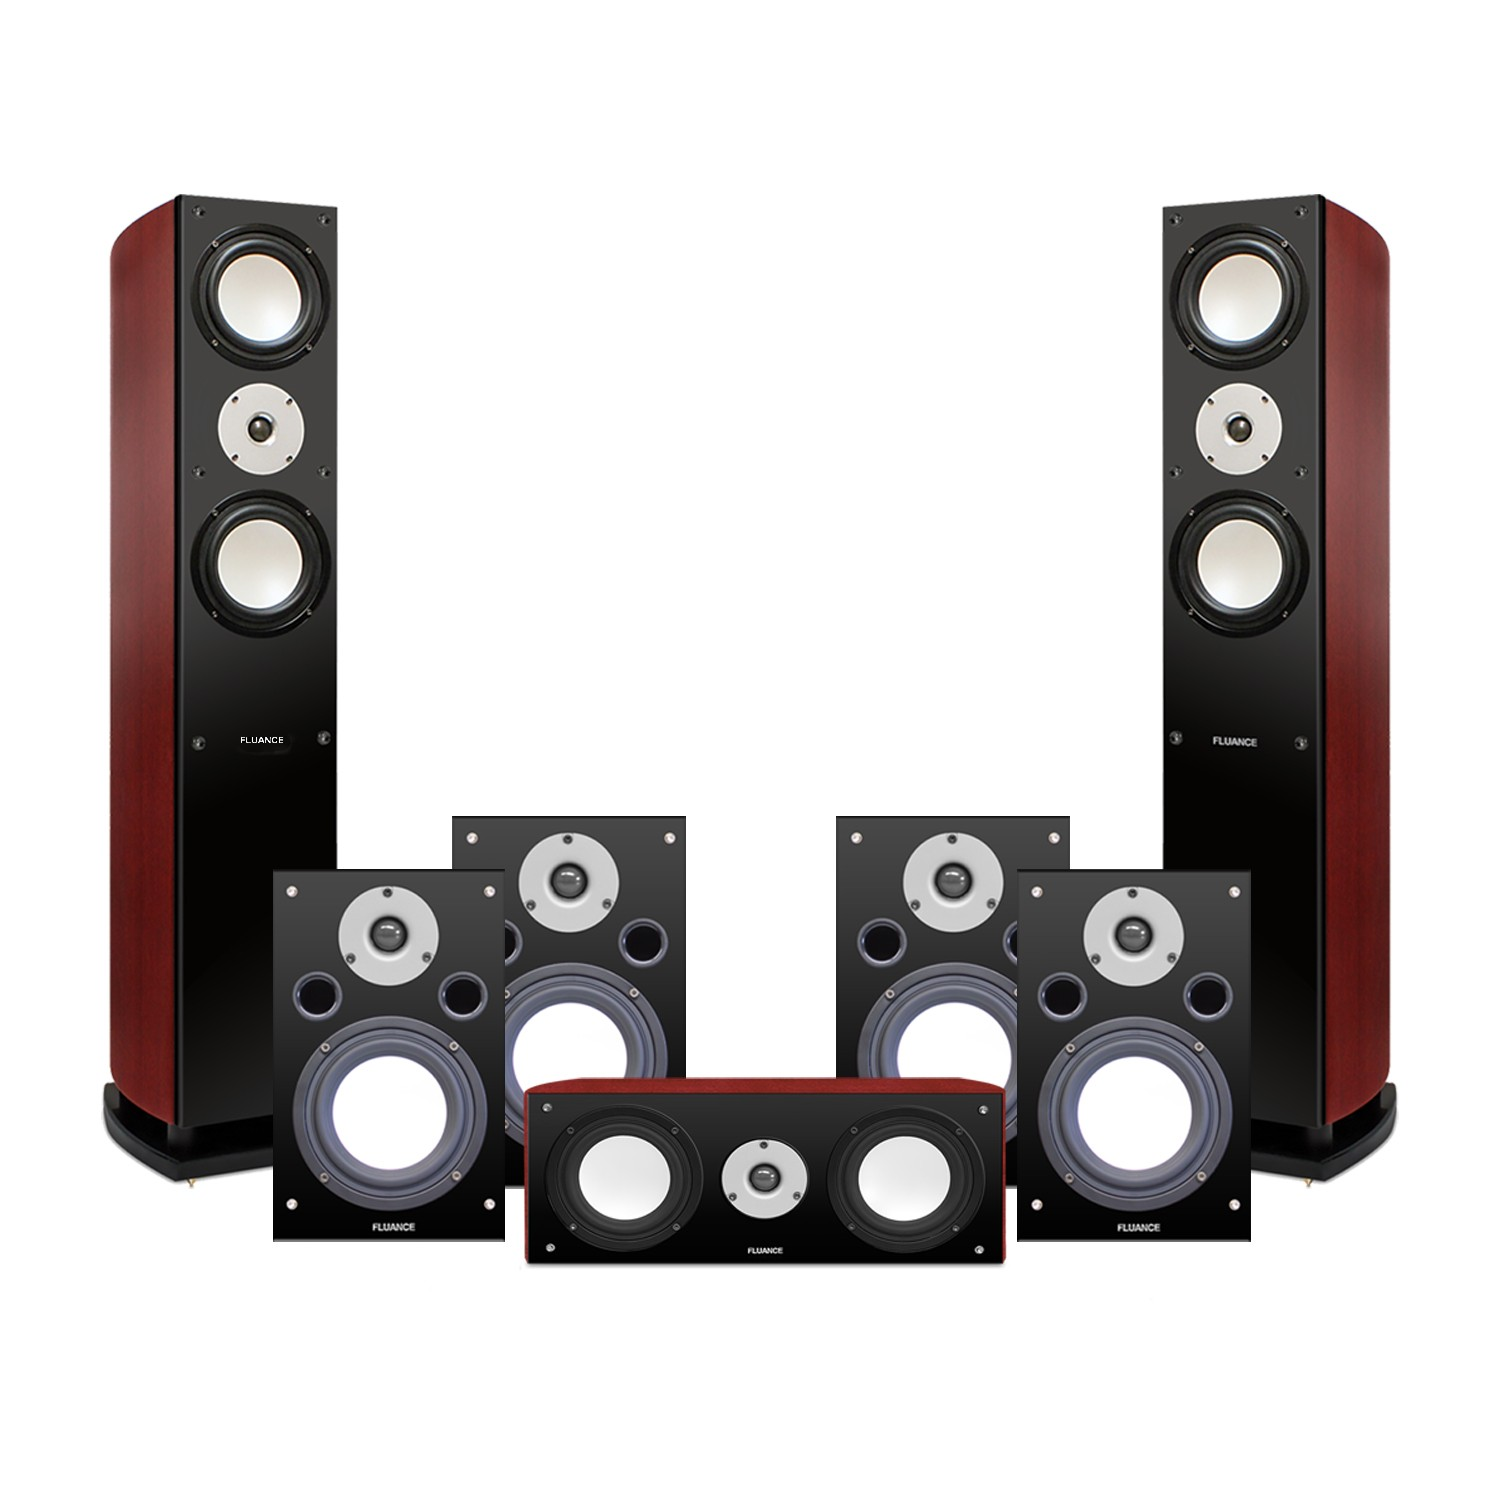 XLHTB-XL7S-KIT home theater system